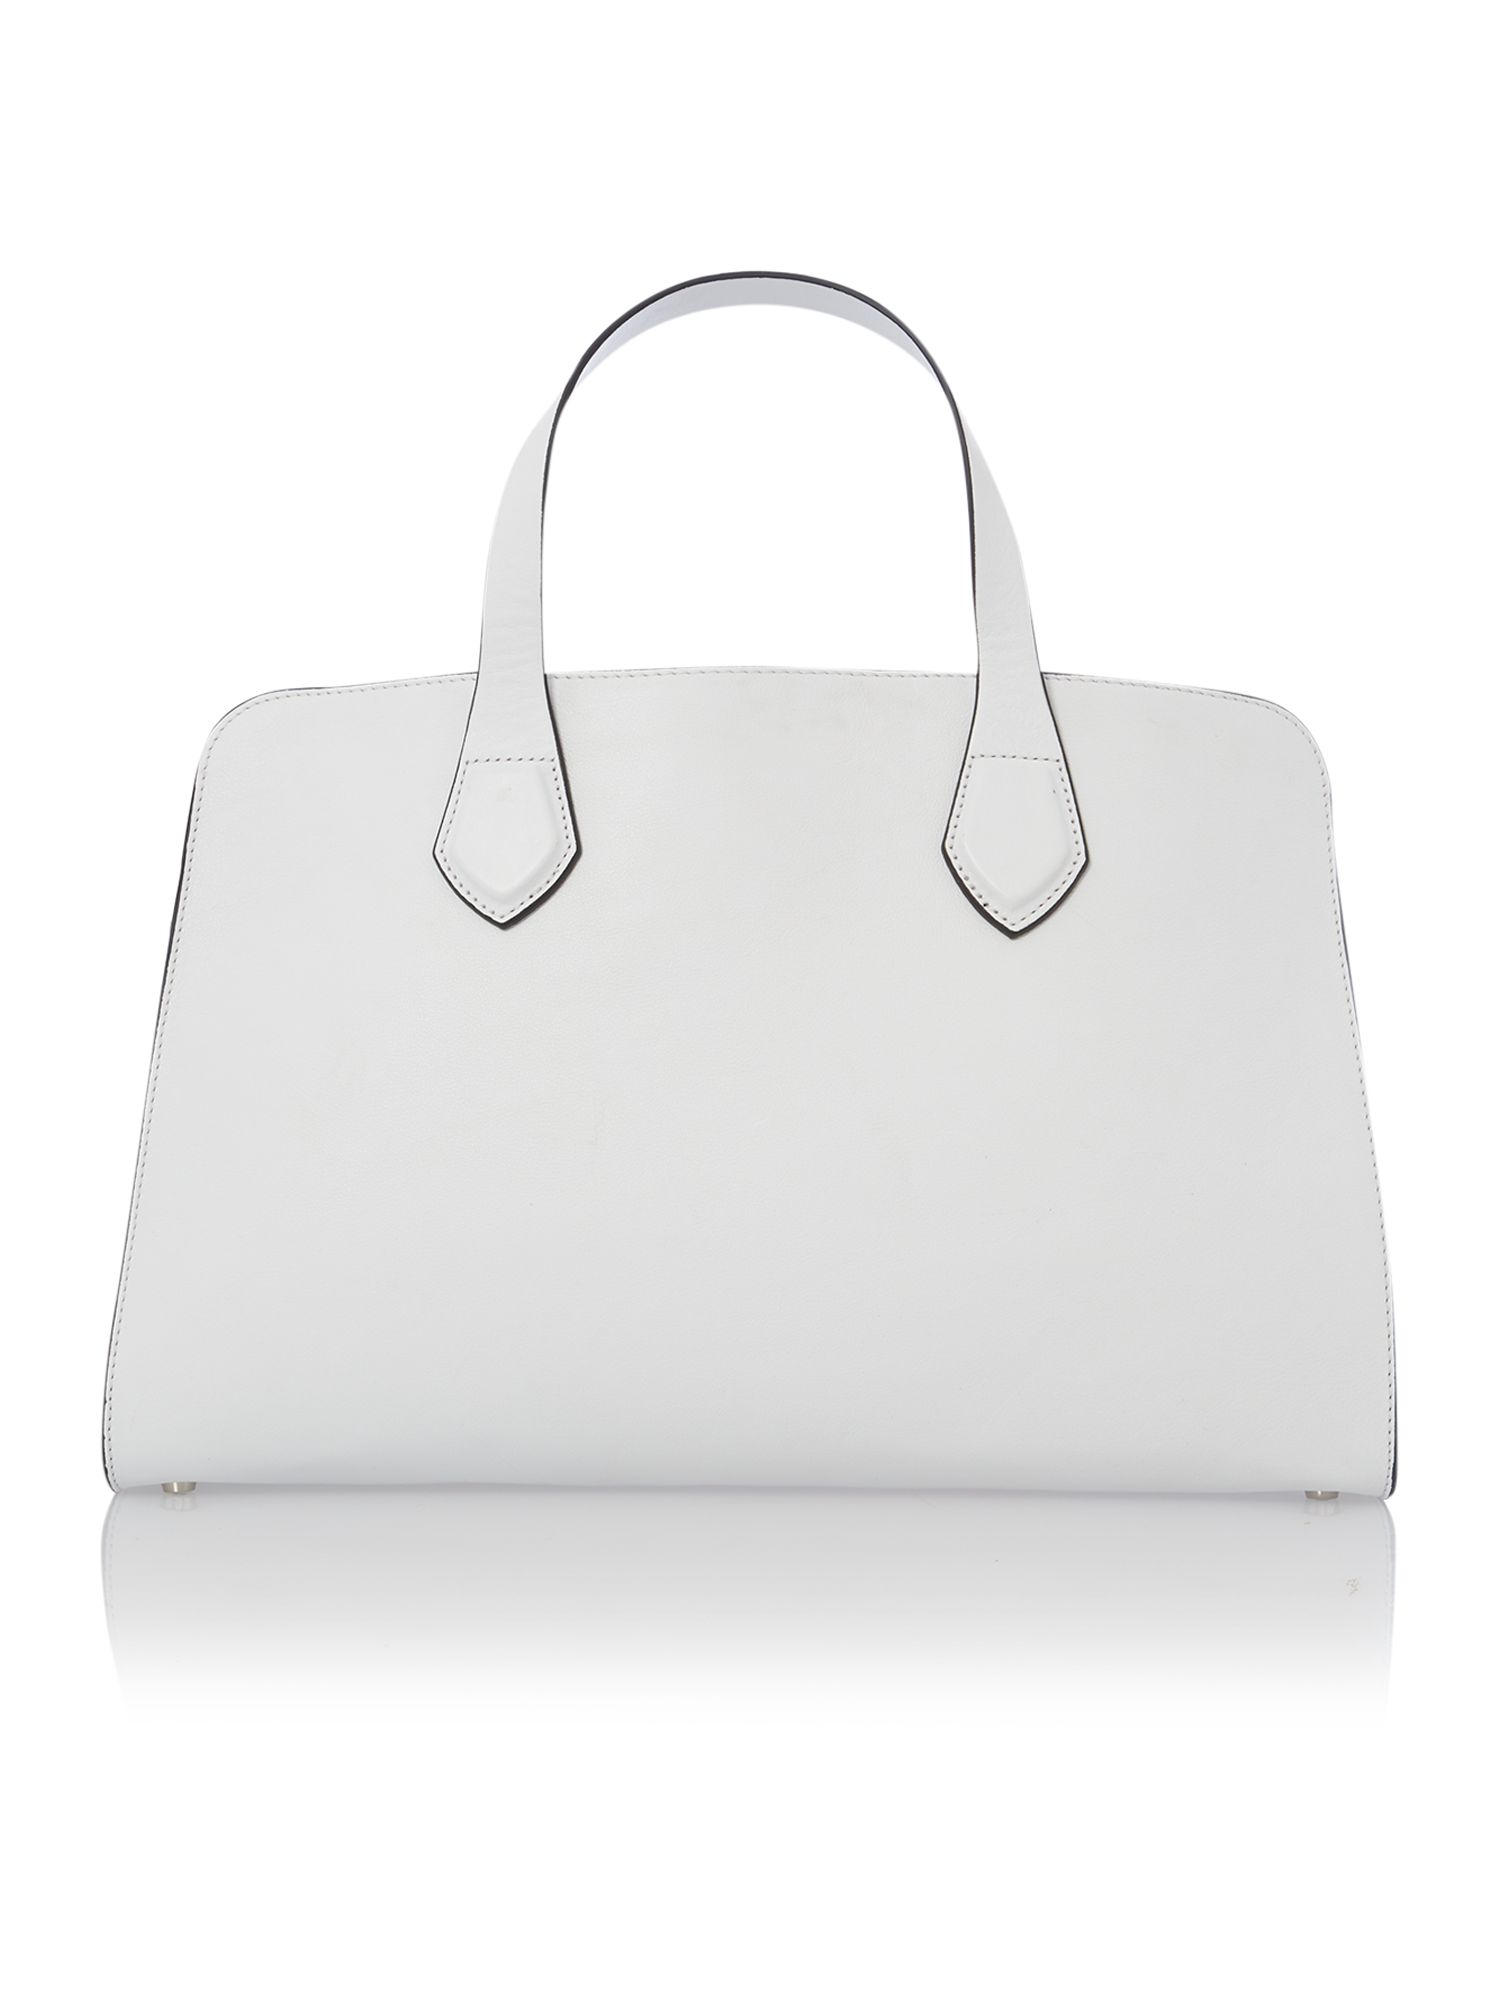 Moon white large tote bag with studs